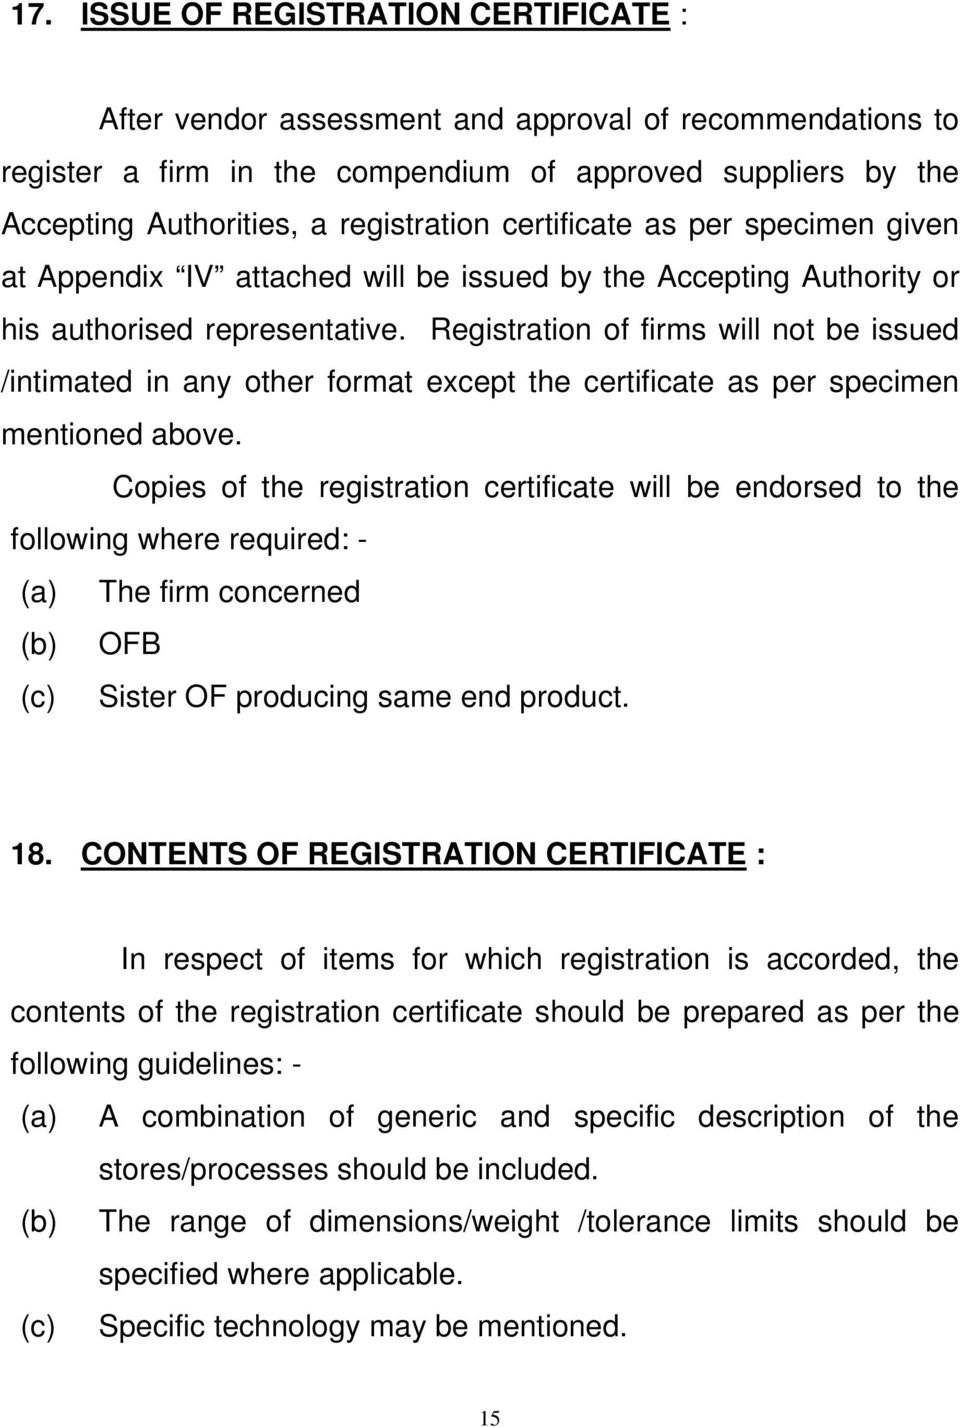 Registration of firms will not be issued /intimated in any other format except the certificate as per specimen mentioned above.